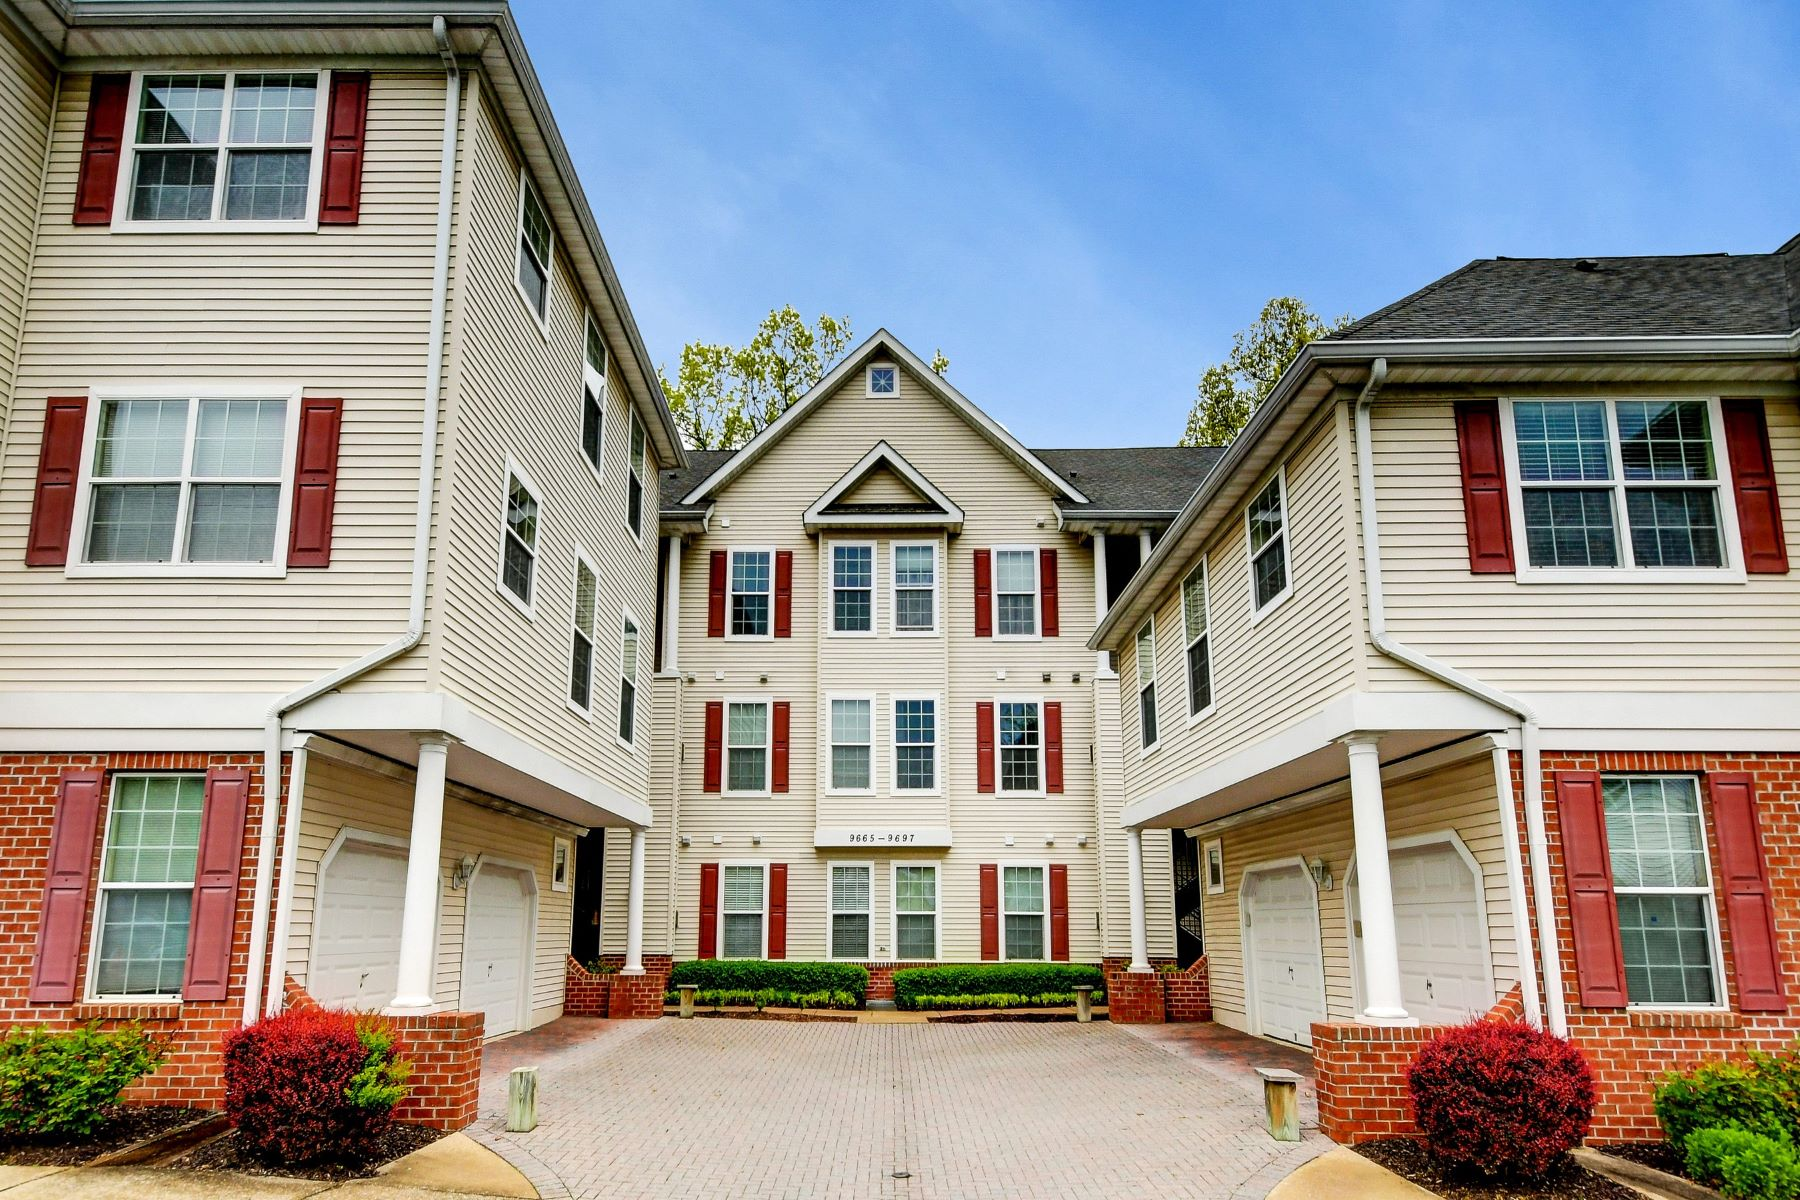 Condominiums for Sale at Move In Ready Condominium in Hollington At The Pointe 9667 Devedente Drive #103 Owings Mills, Maryland 21117 United States